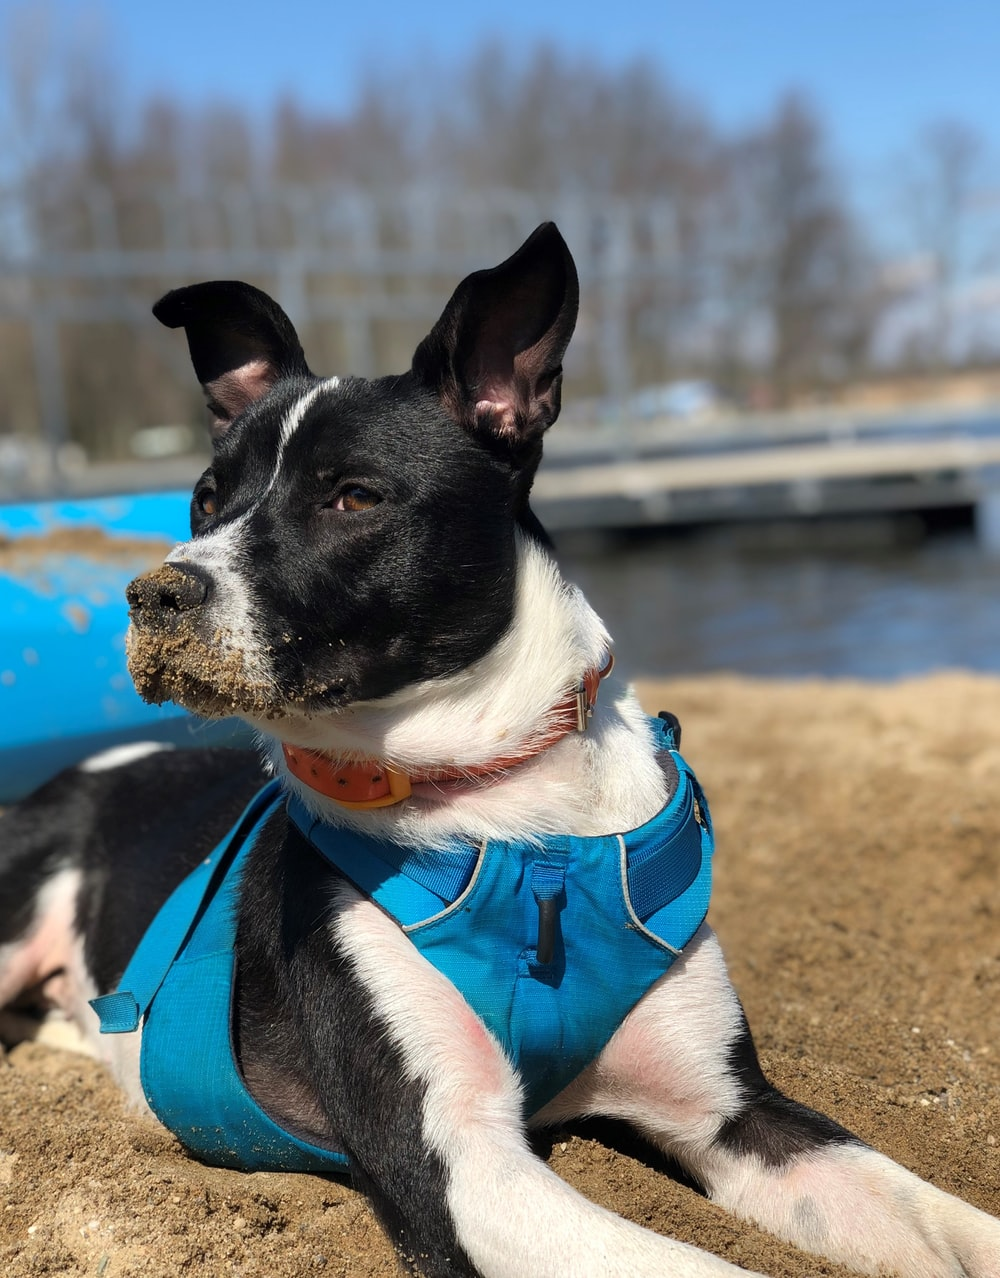 black and white short coat small dog with blue collar sitting on brown sand during daytime